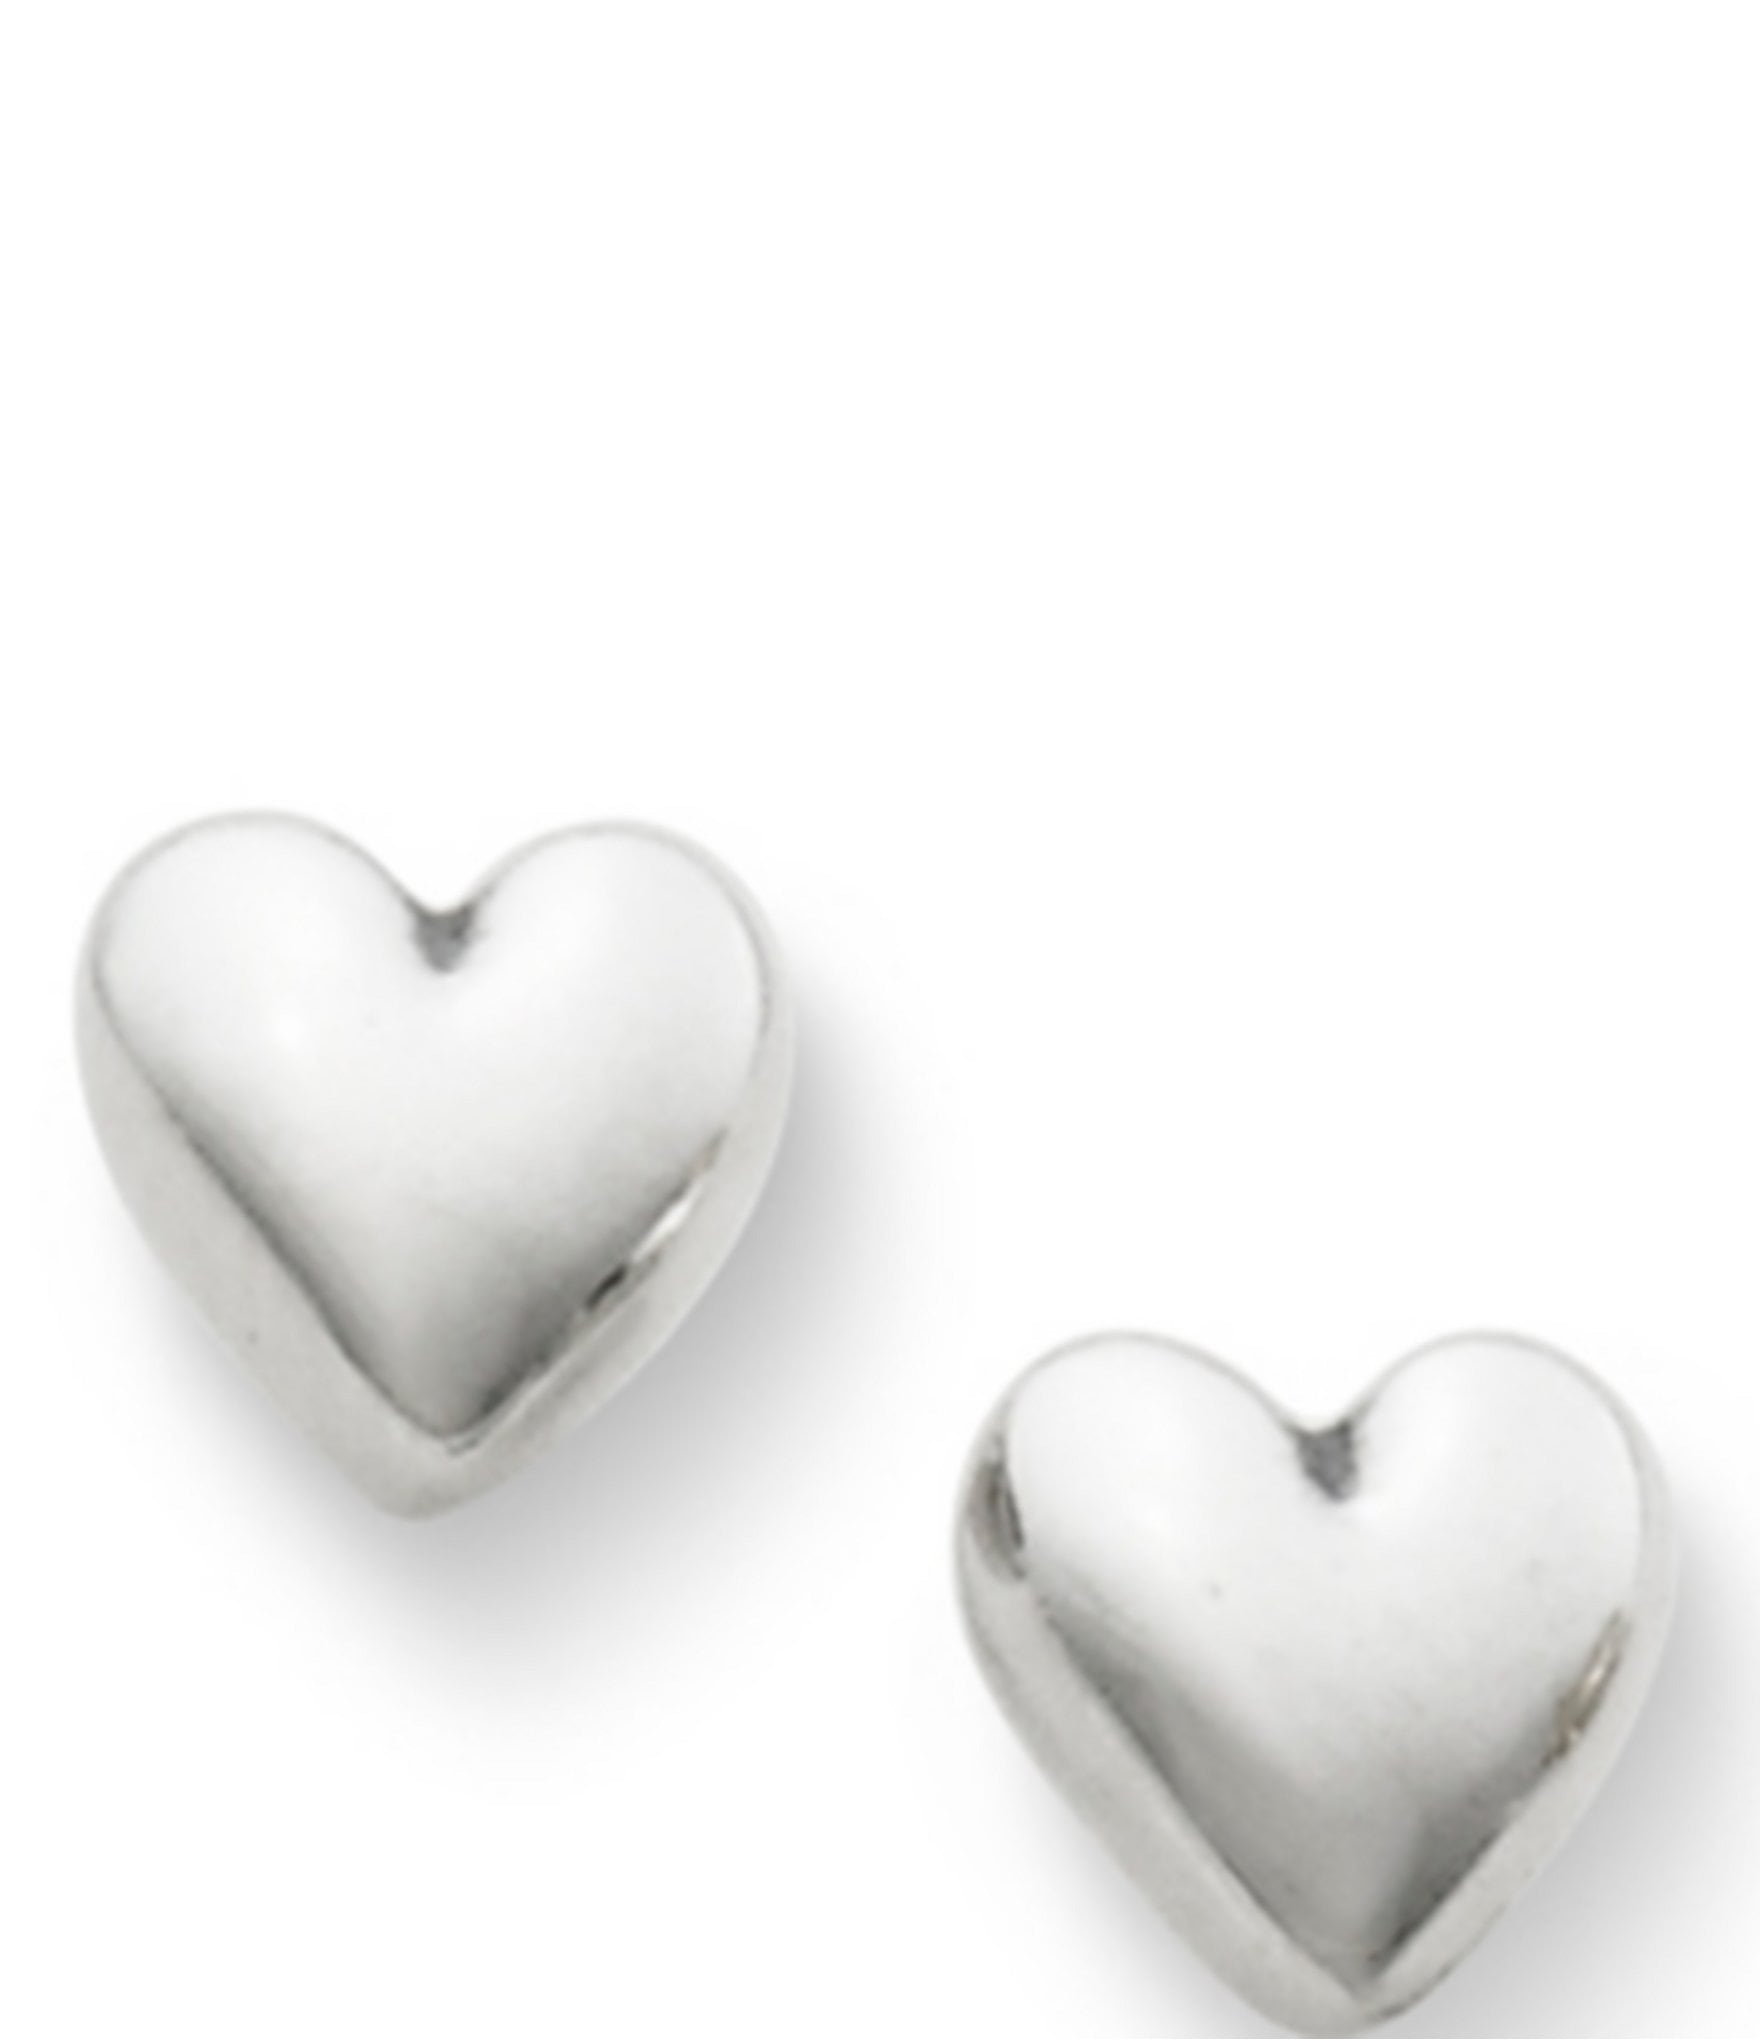 James Avery Solid Heart Sterling Silver Stud Earrings  738668475f1c